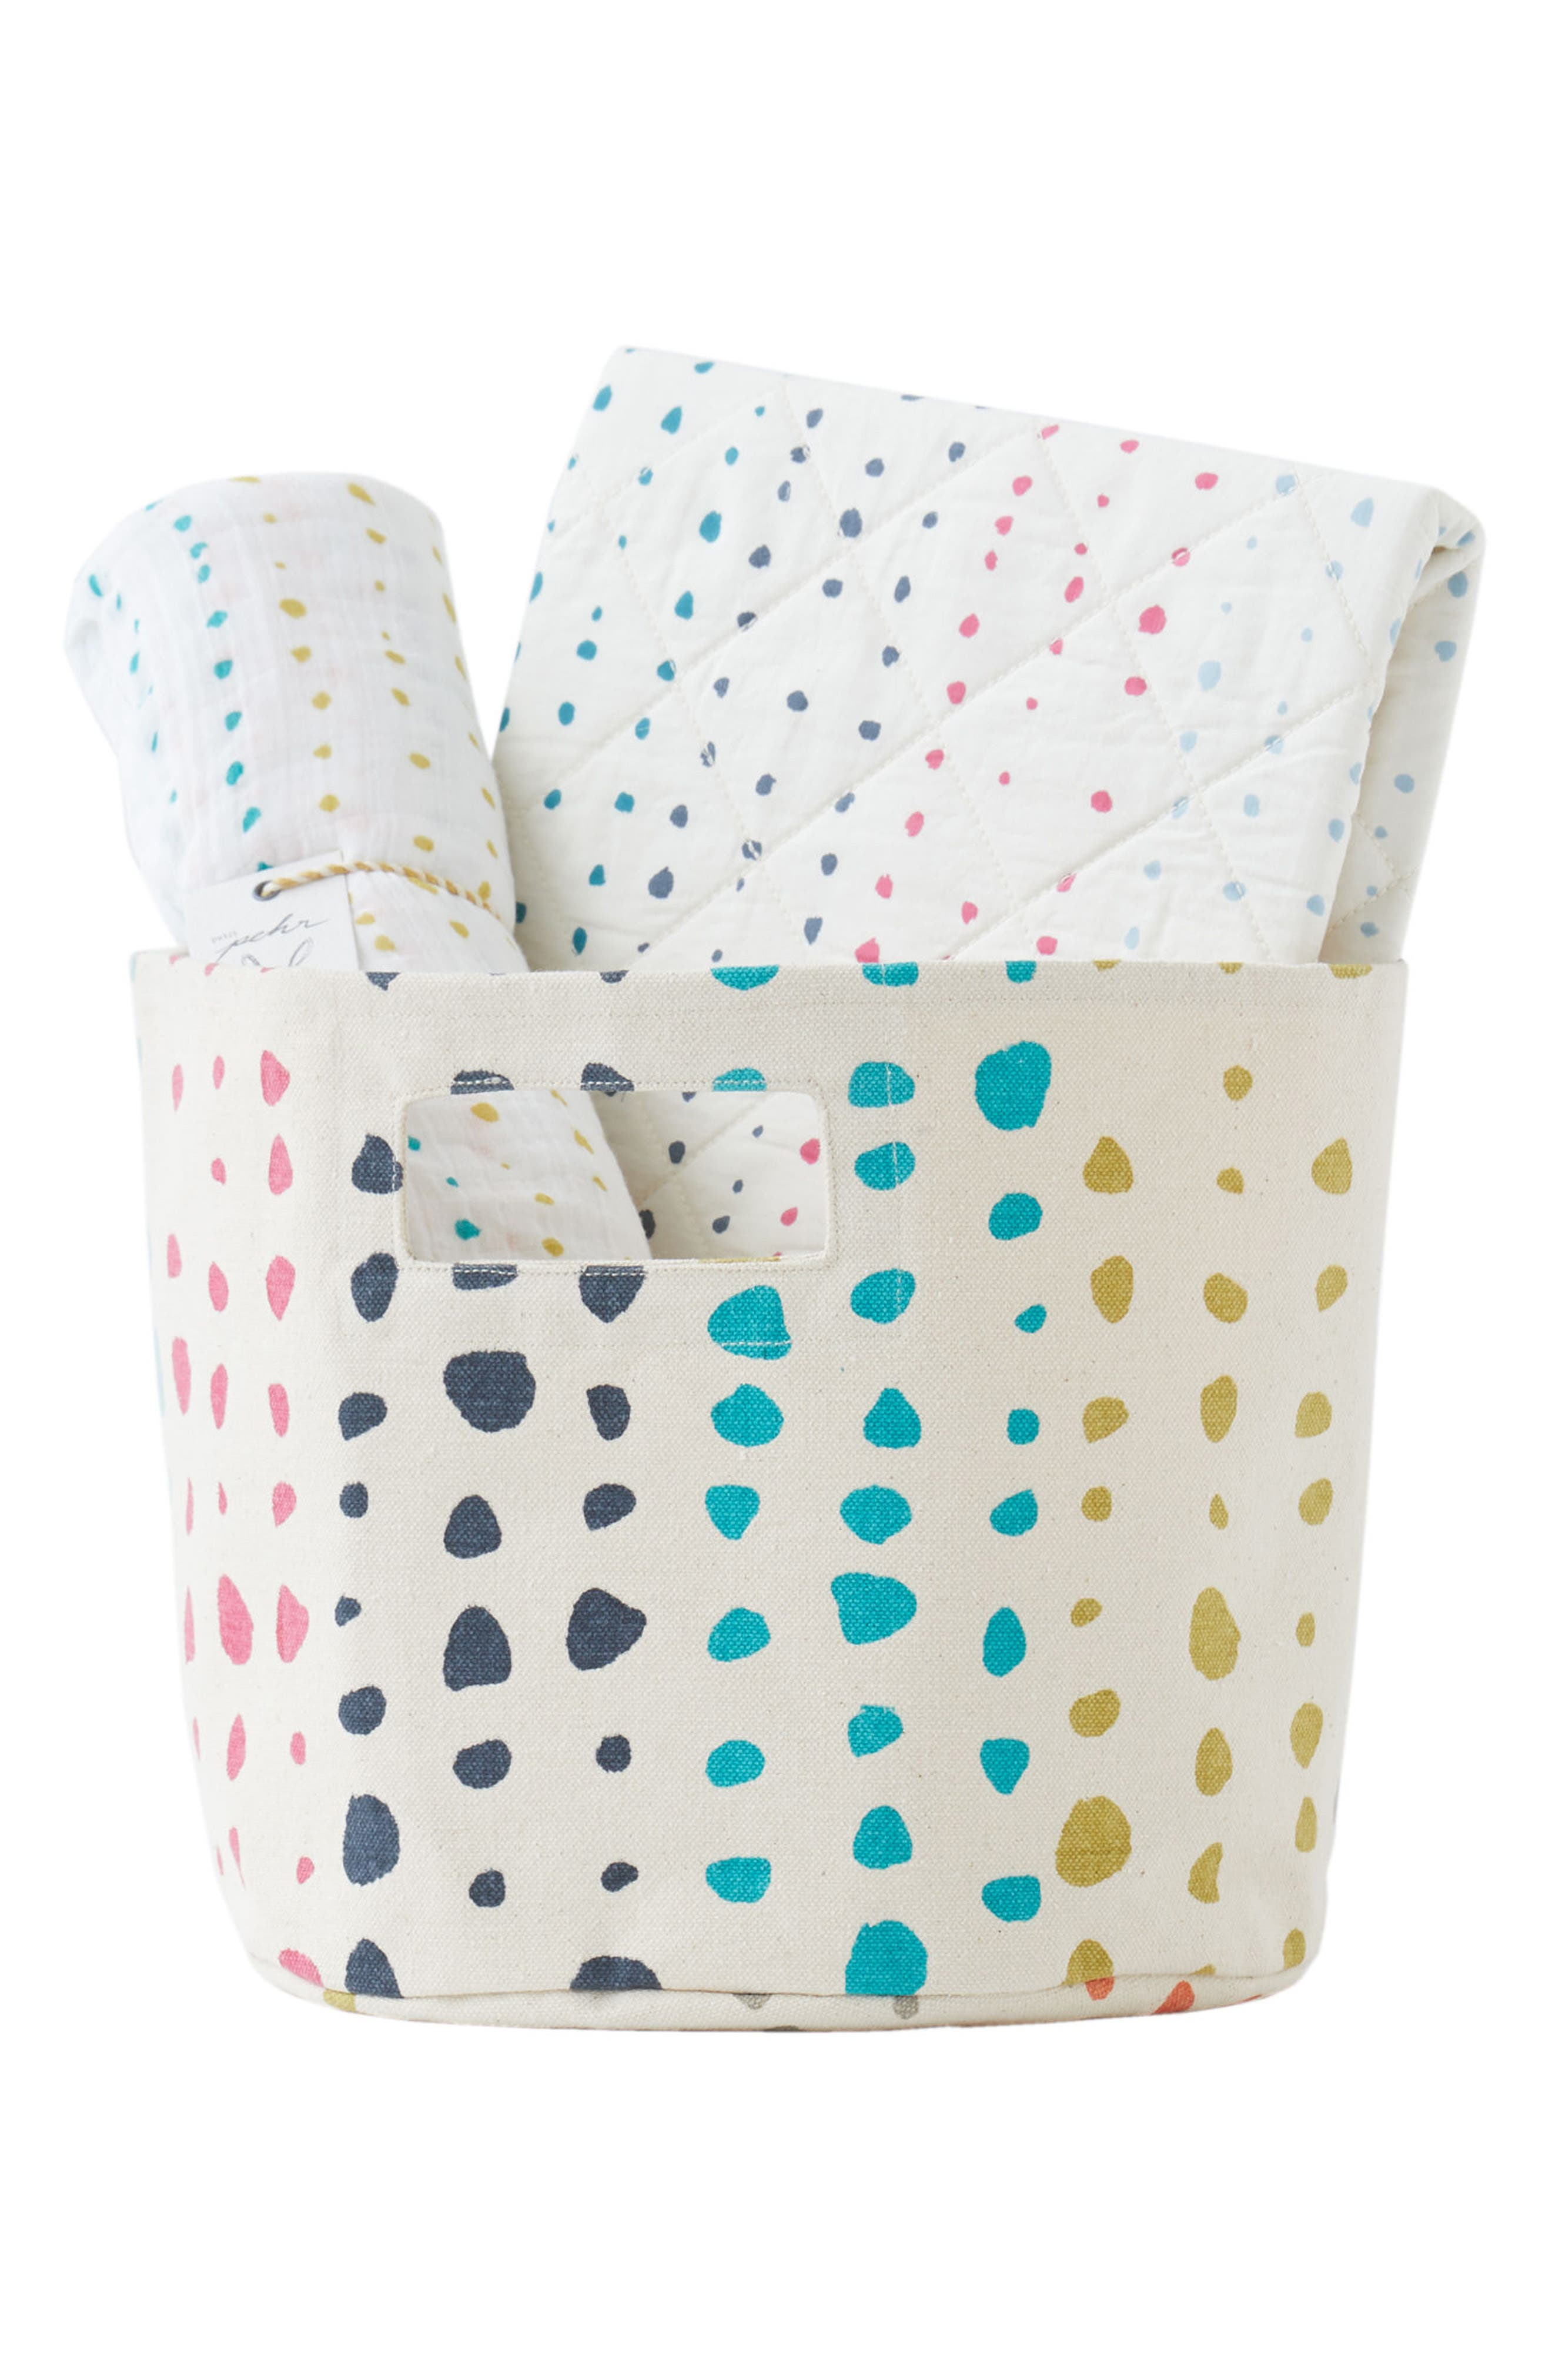 Painted Dots Changing Pad Cover, Swaddle & Bin Set,                         Main,                         color, Multi